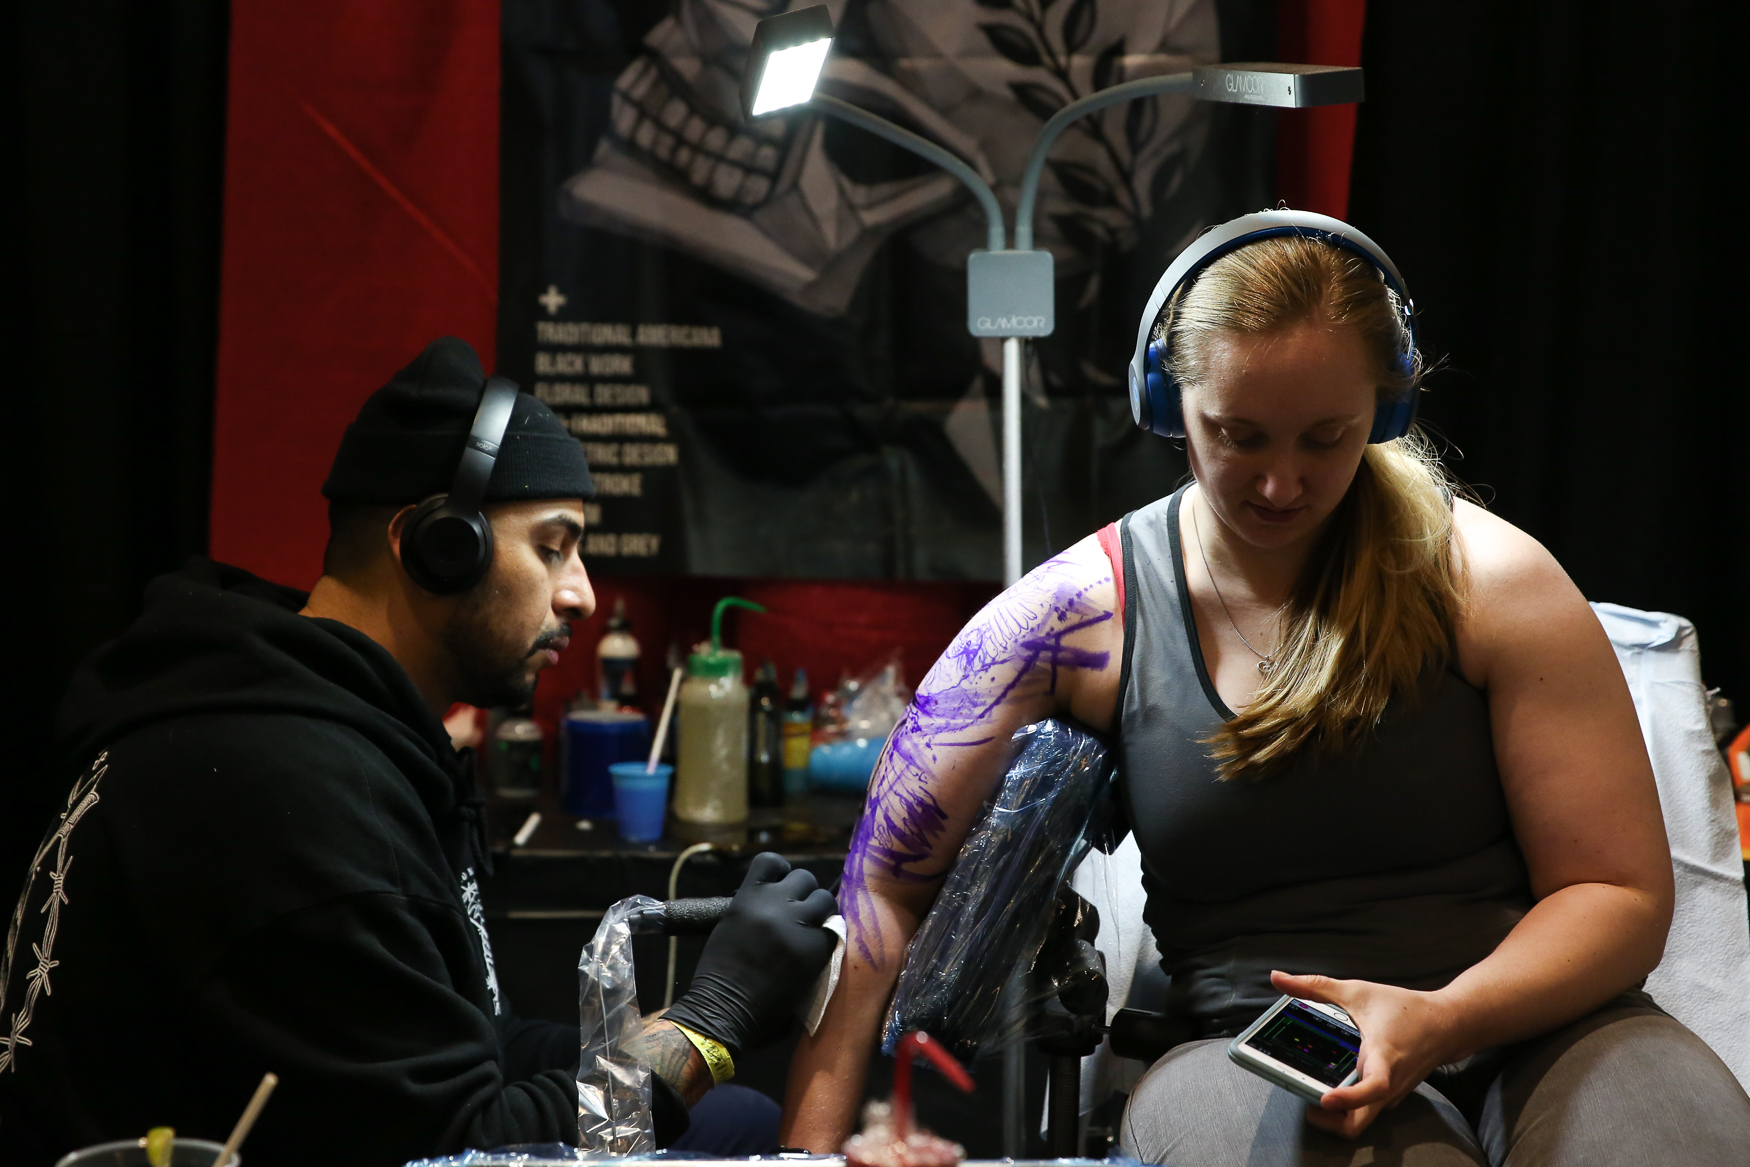 The D.C. Tattoo expo is back at the Crystal Gateway Marriott in Crystal City. Hundreds of tattoo artists, piercers, people looking for new ink and curious onlookers can gather through this weekend to celebrate tattooing. In addition to offering opportunities to get tattoos from artists that aren't local, the tattoo convention gives people a chance to show off their body art work, which we've also featured here. (Amanda Andrade-Rhoades/DC Refined)